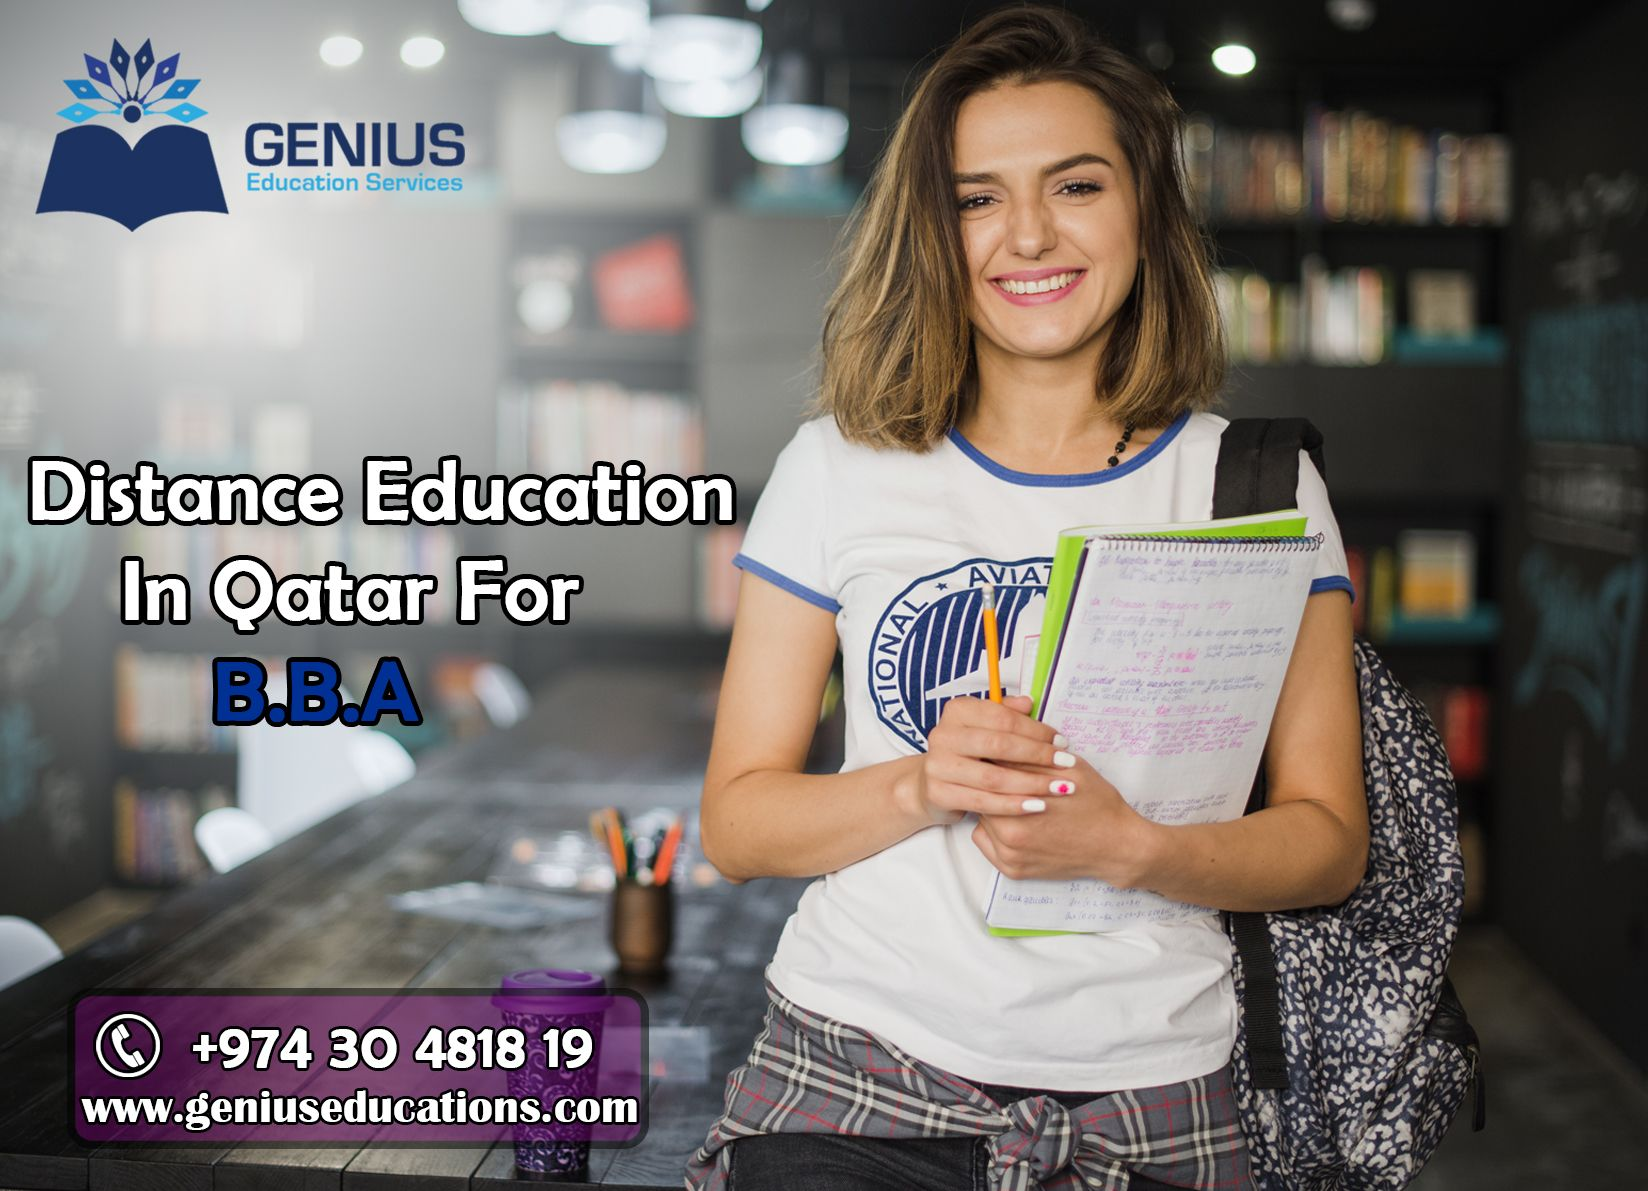 We offer distance education for many graduations at one